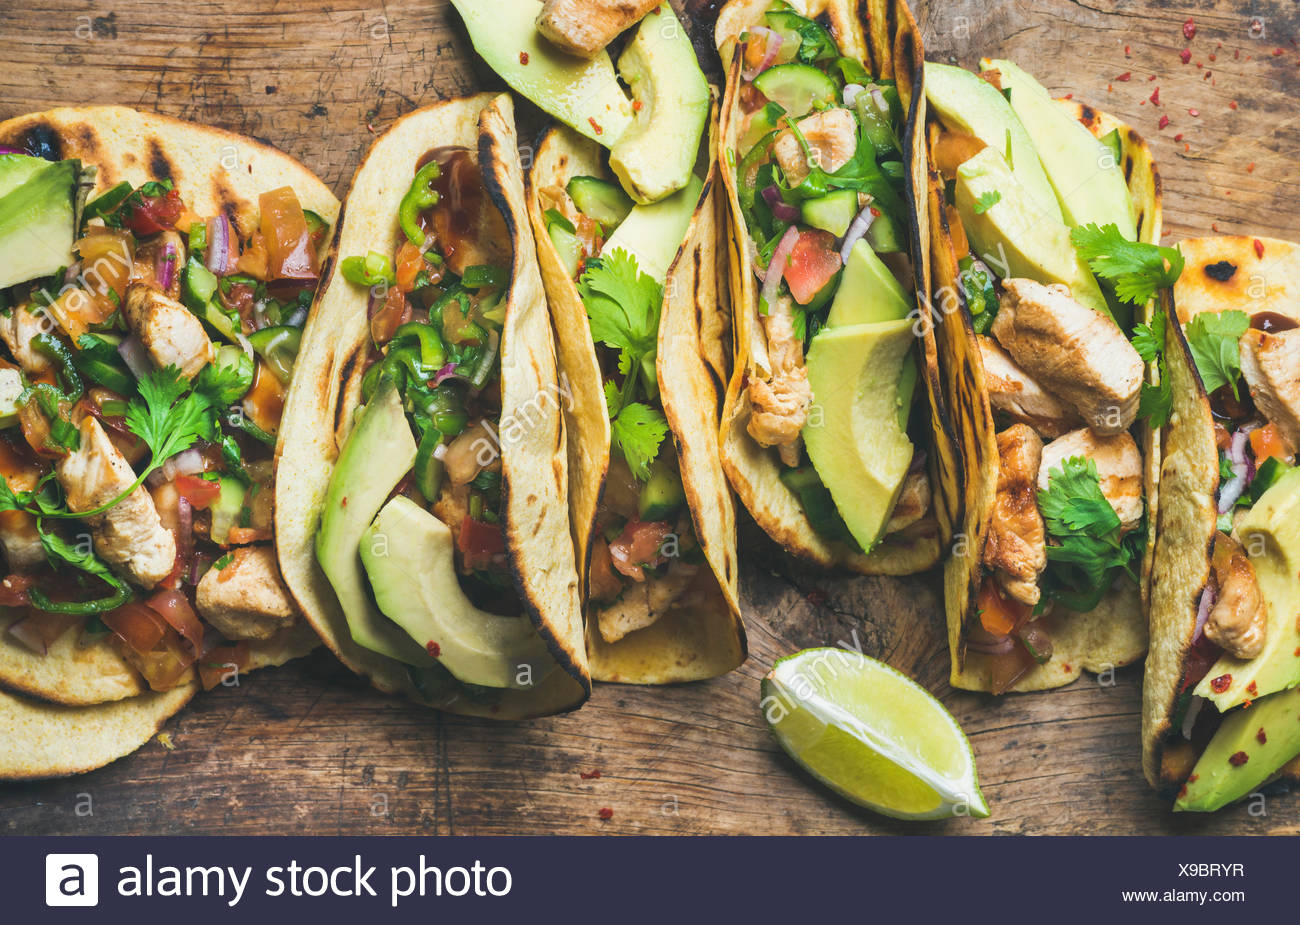 Tacos with grilled chicken, avocado, fresh salsa sauce and limes over rustic wooden background, top view. Healthy low carb and low fat lunch or food f - Stock Image